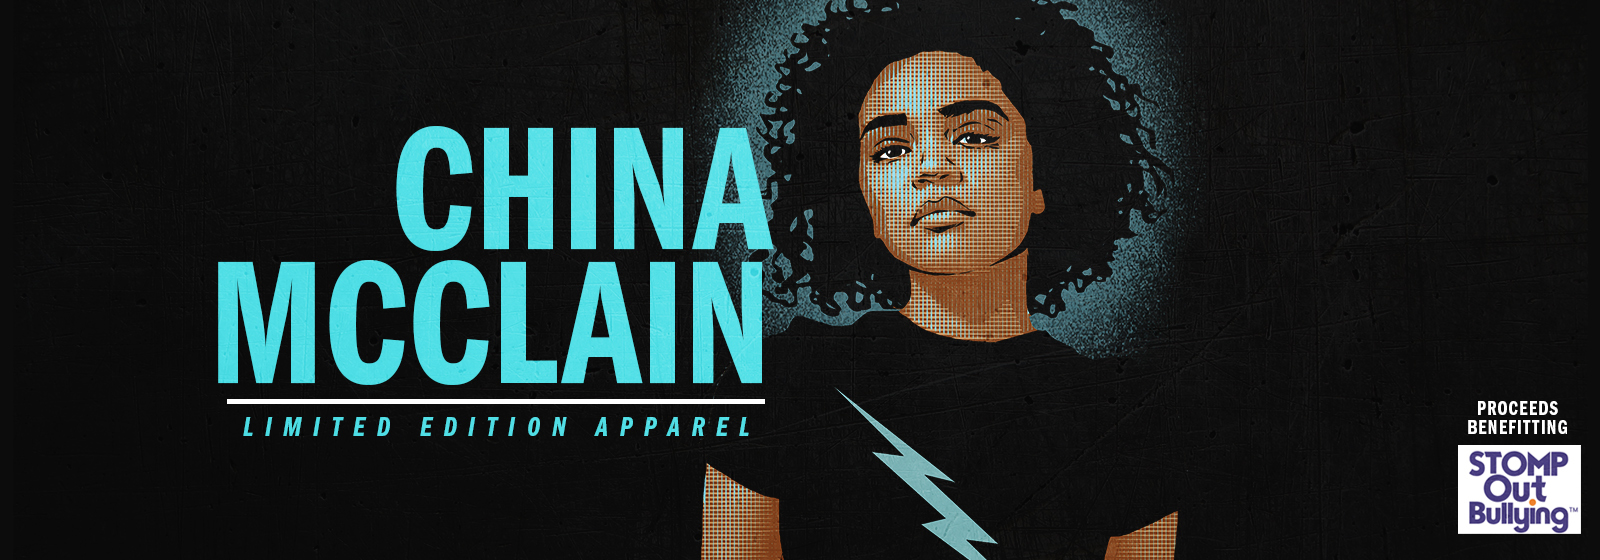 China McClain Apparel Store